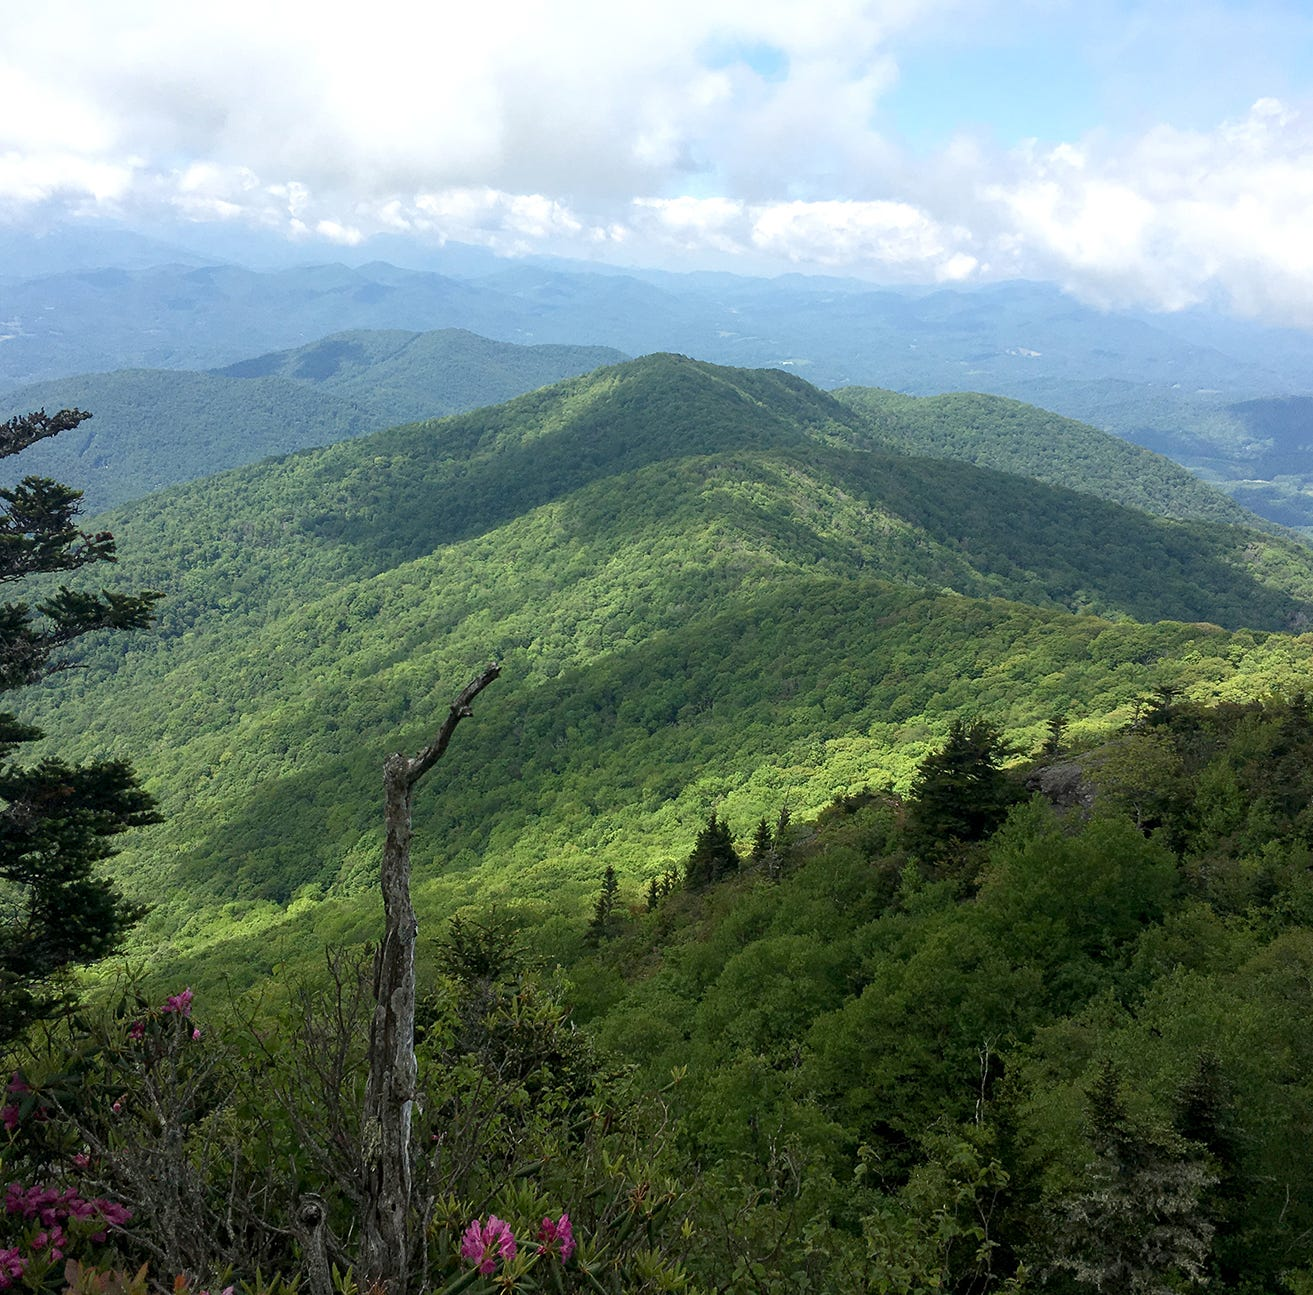 Highlands of Roan conservation to forever protect mountain, will aid in climate resilience